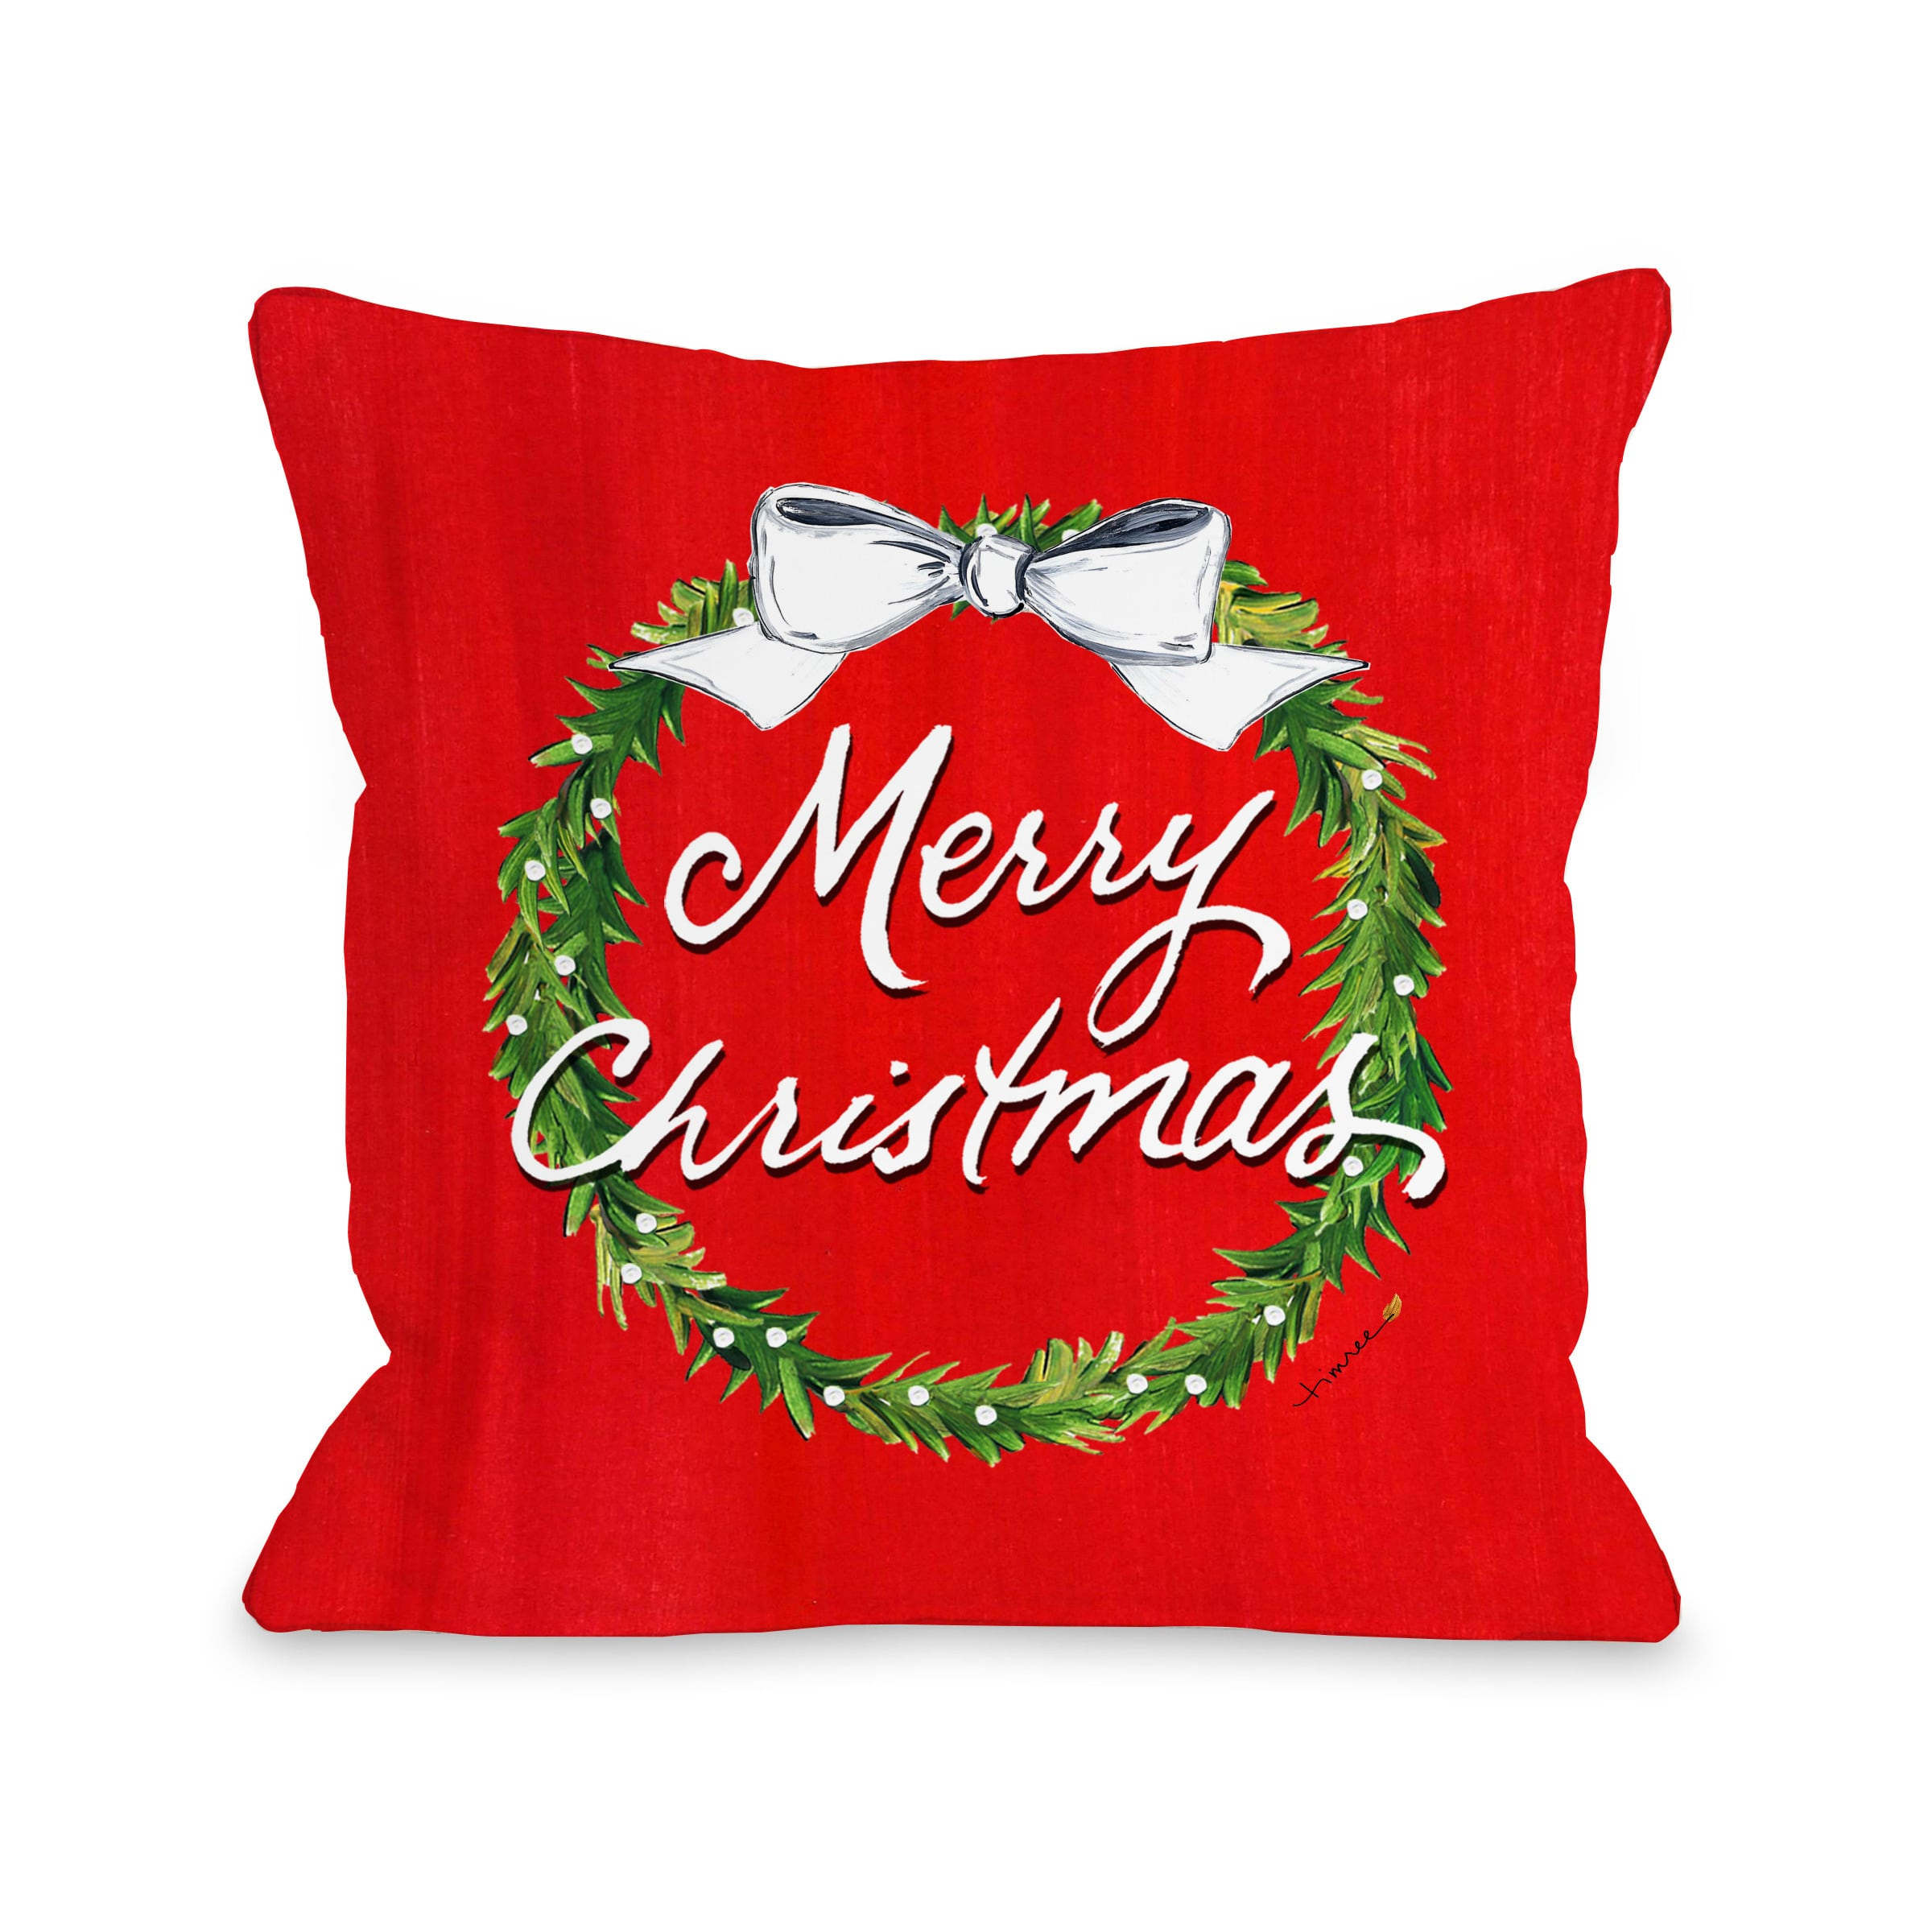 Merry Christmas Wreath - Red 18x18 Pillow by Timree Gold